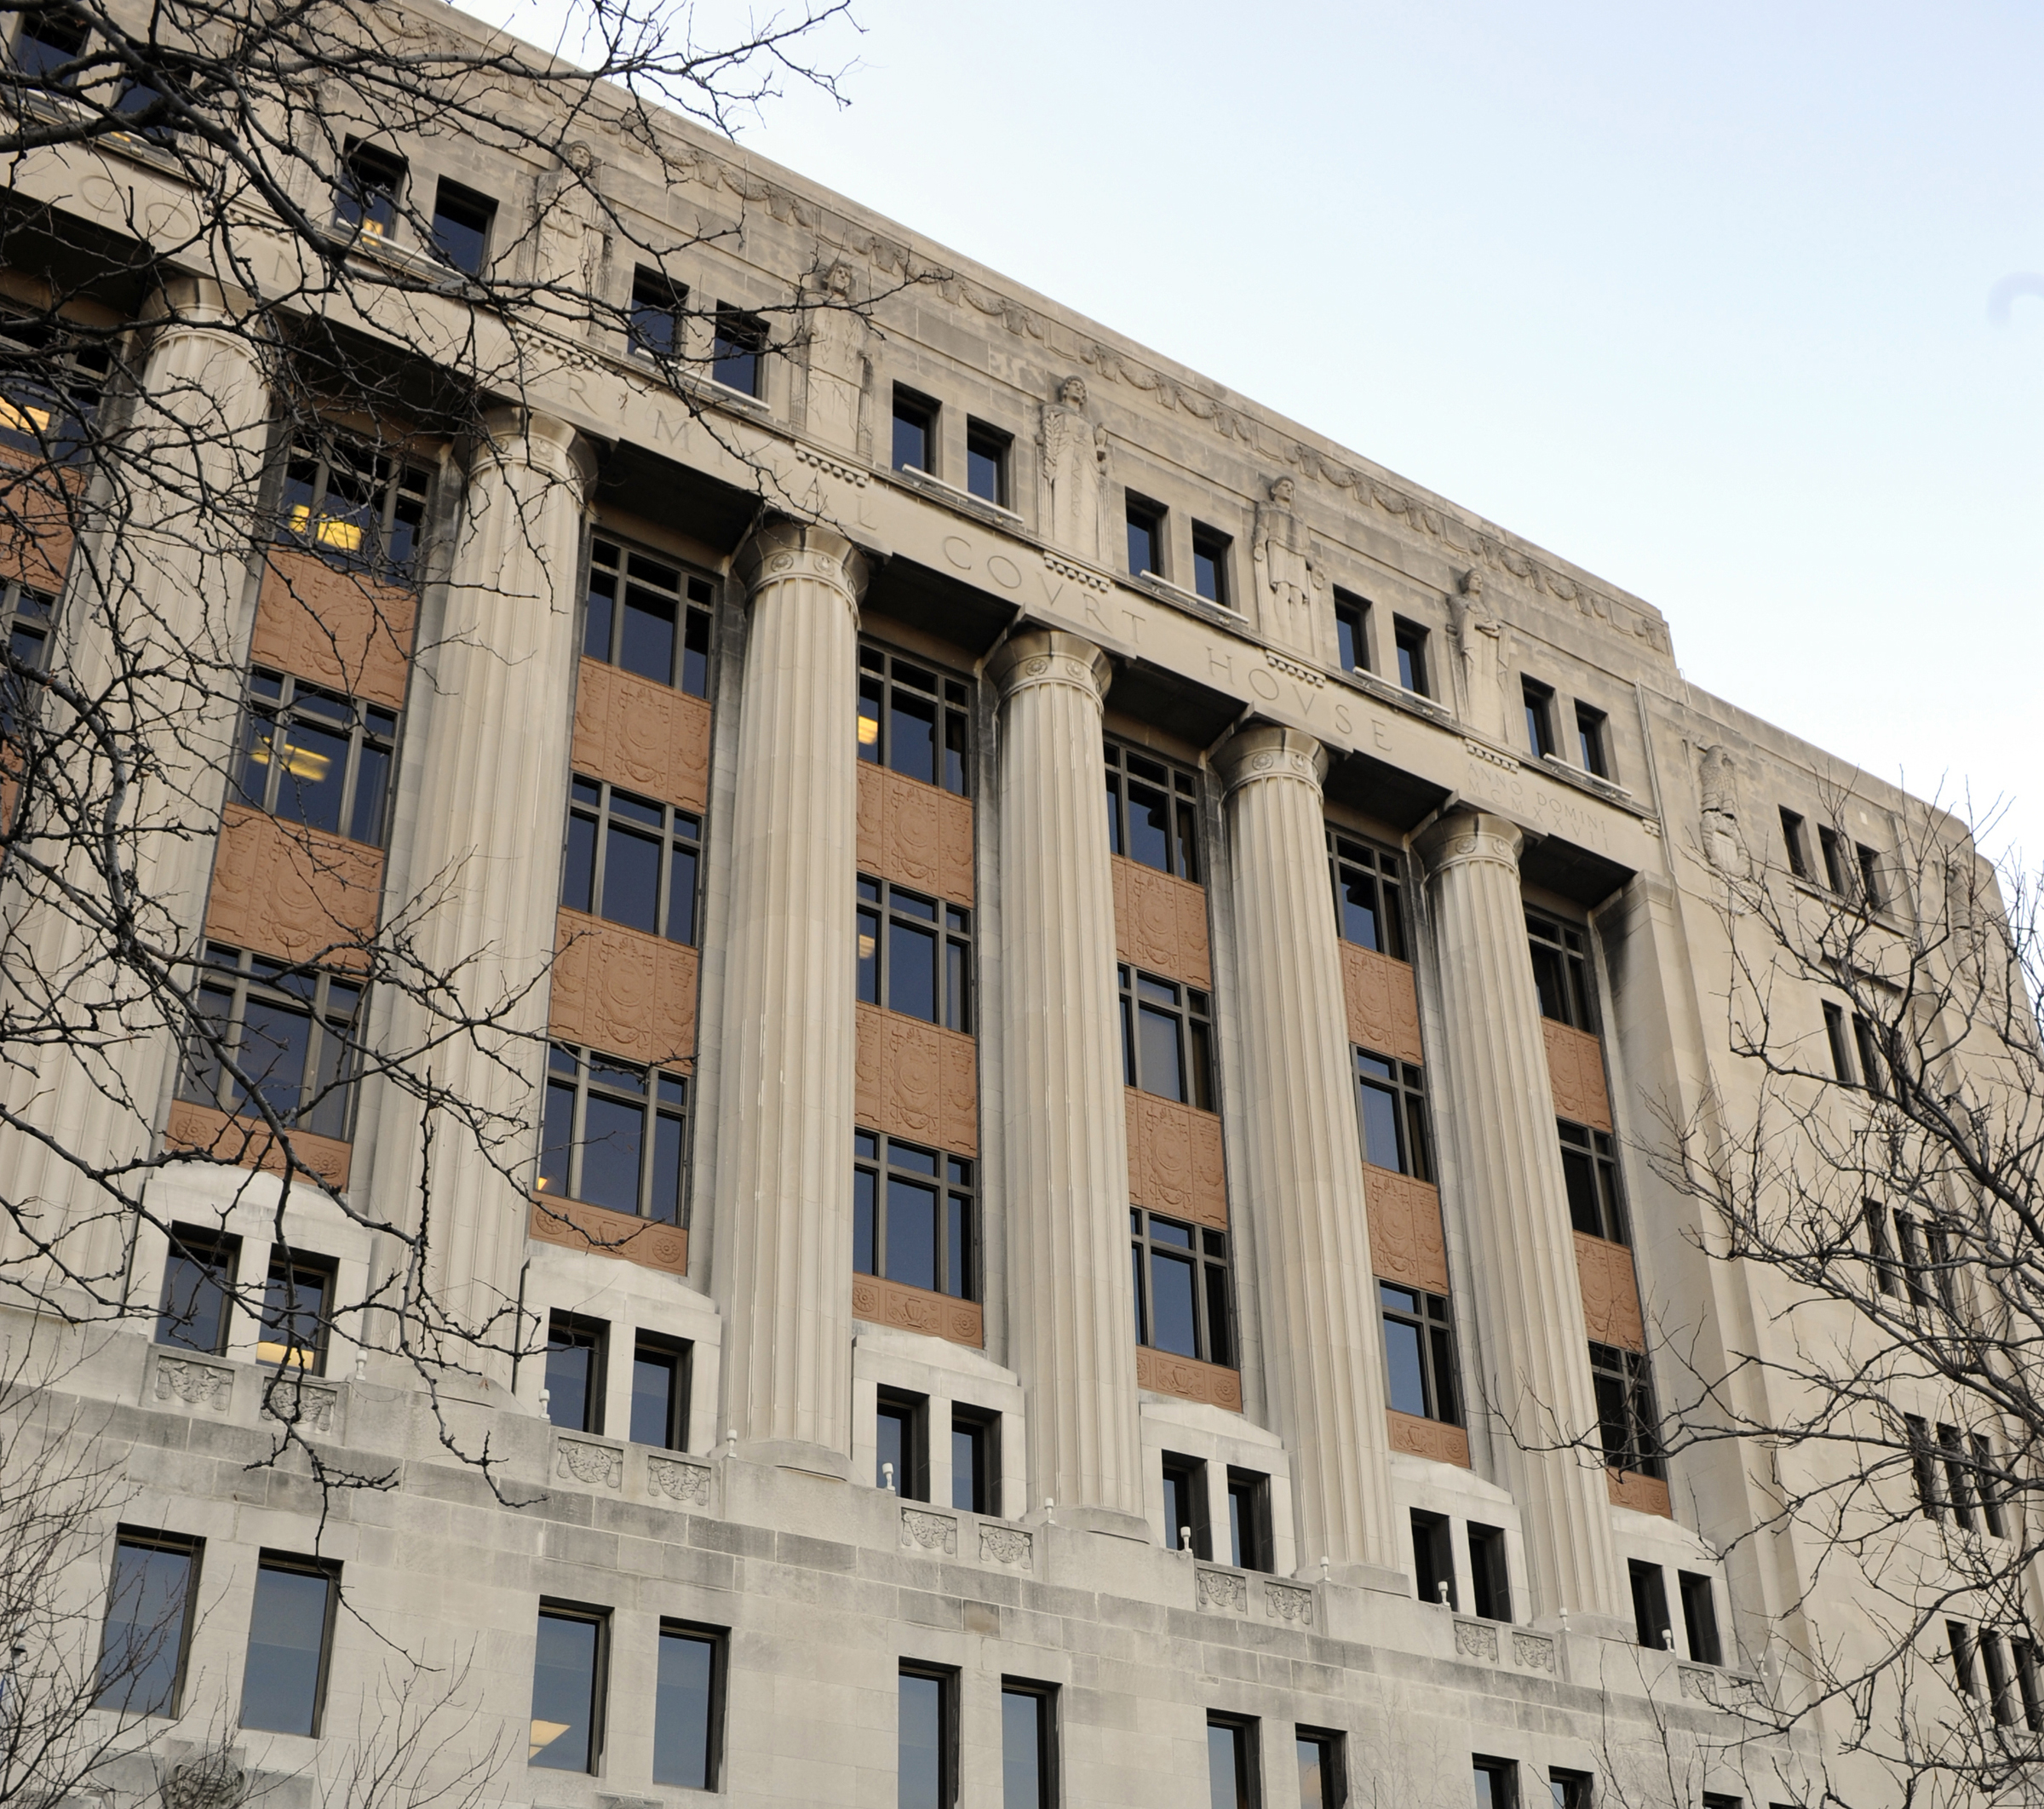 Fire crews responded to a small blaze Dec. 19 at the Leighton Criminal Court Building.